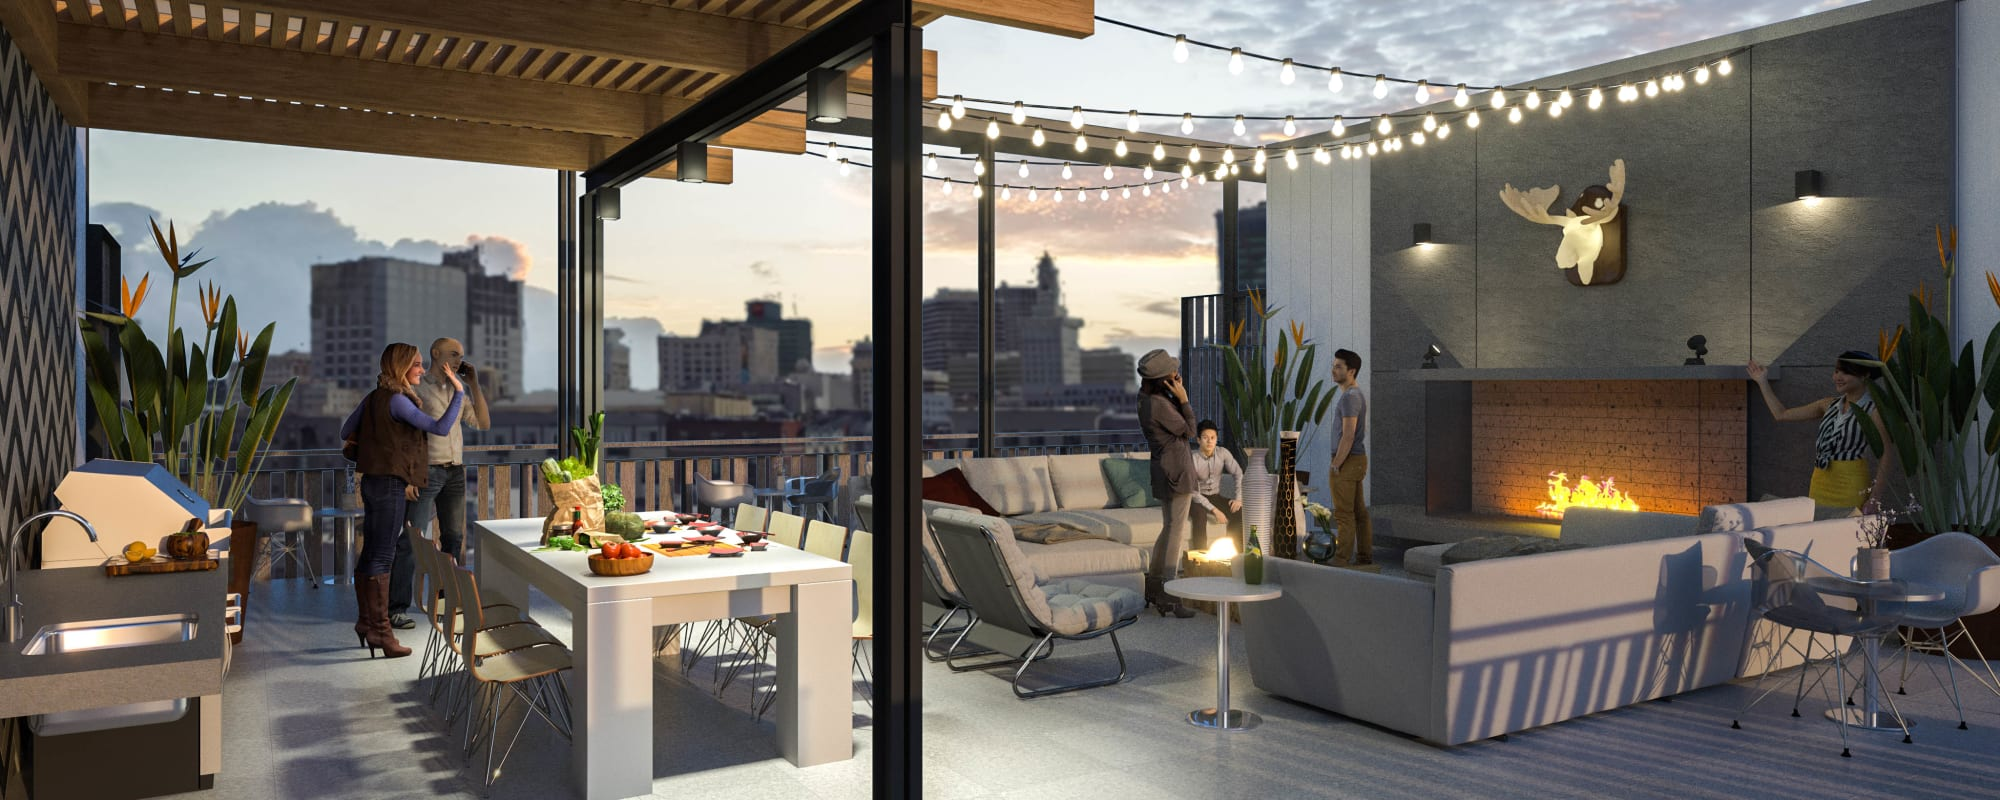 Rooftop patio rendering at The Moran in Oakland, California